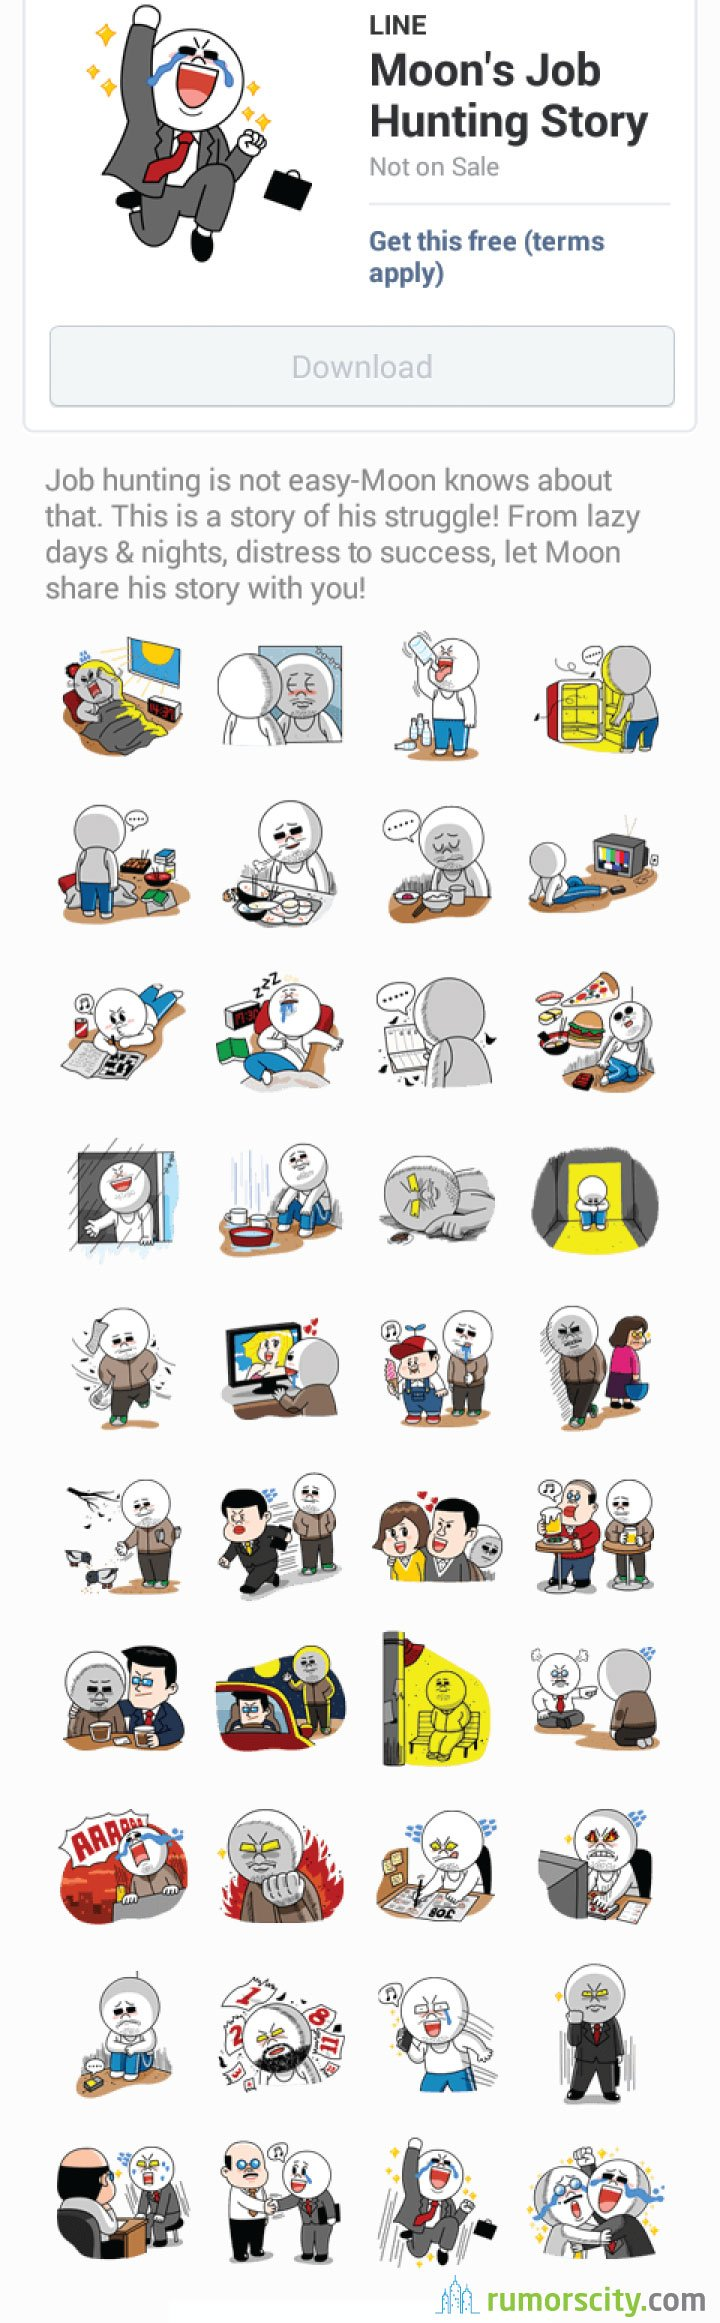 Moons-Job-Hunting-Story-Line-sticker-in-Egypt-01